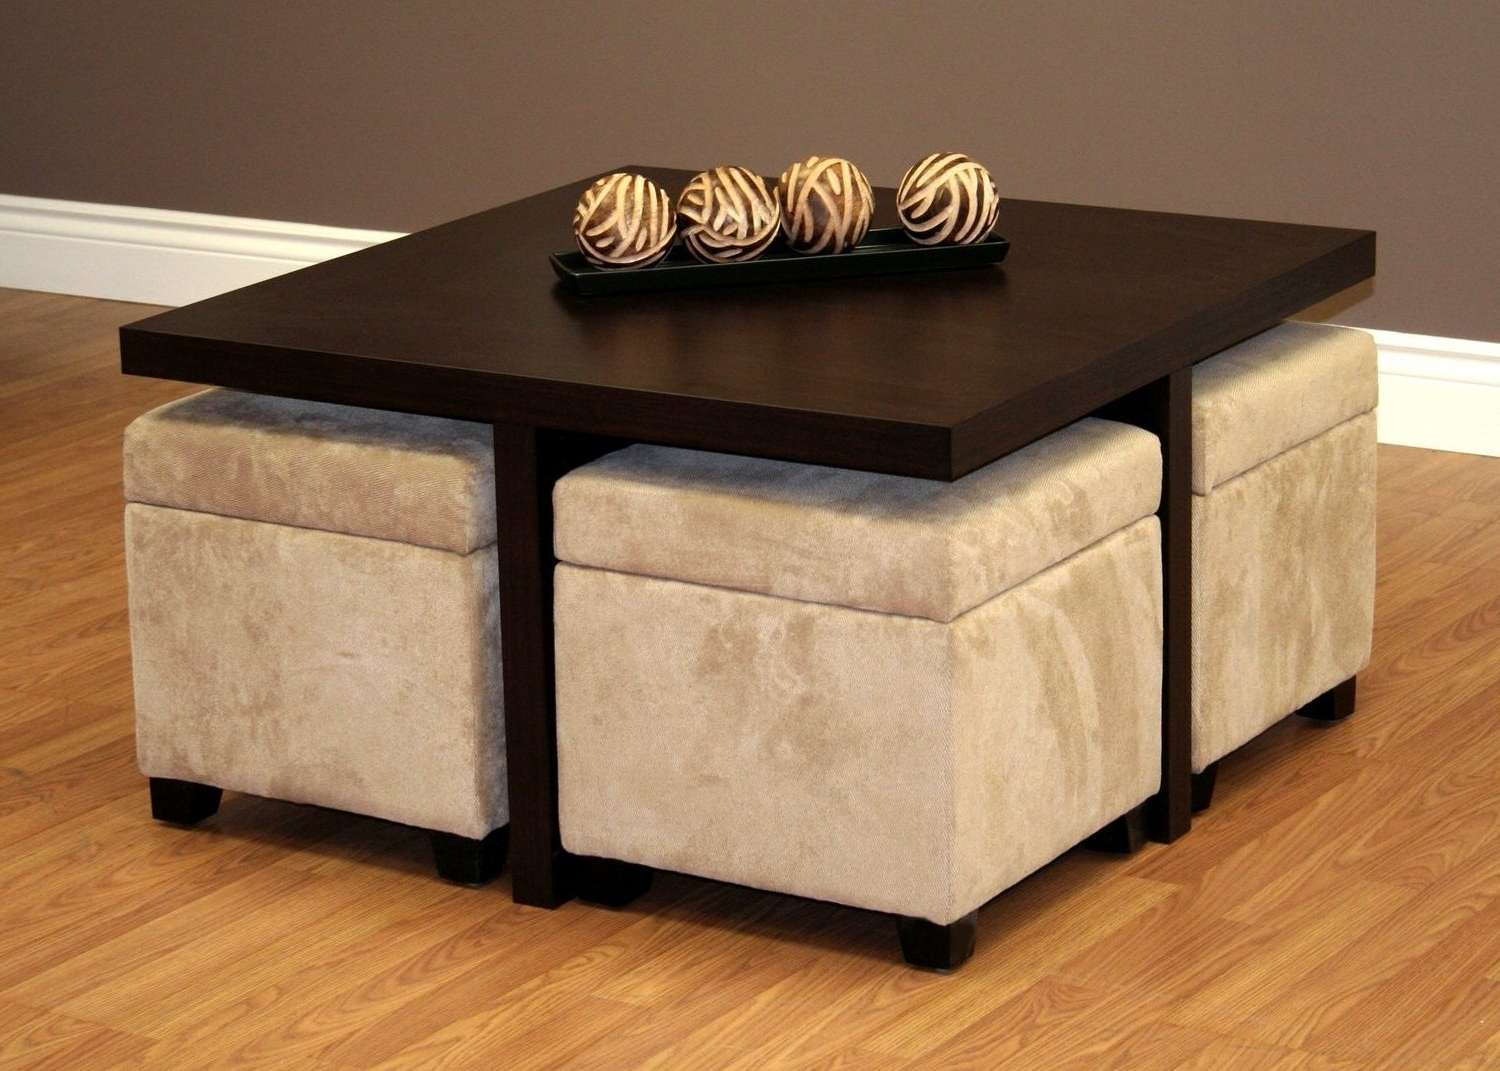 Things You Won't Miss Out If You Attend Coffee Table With Stools With Regard To 2018 Coffee Table With Stools (View 2 of 20)